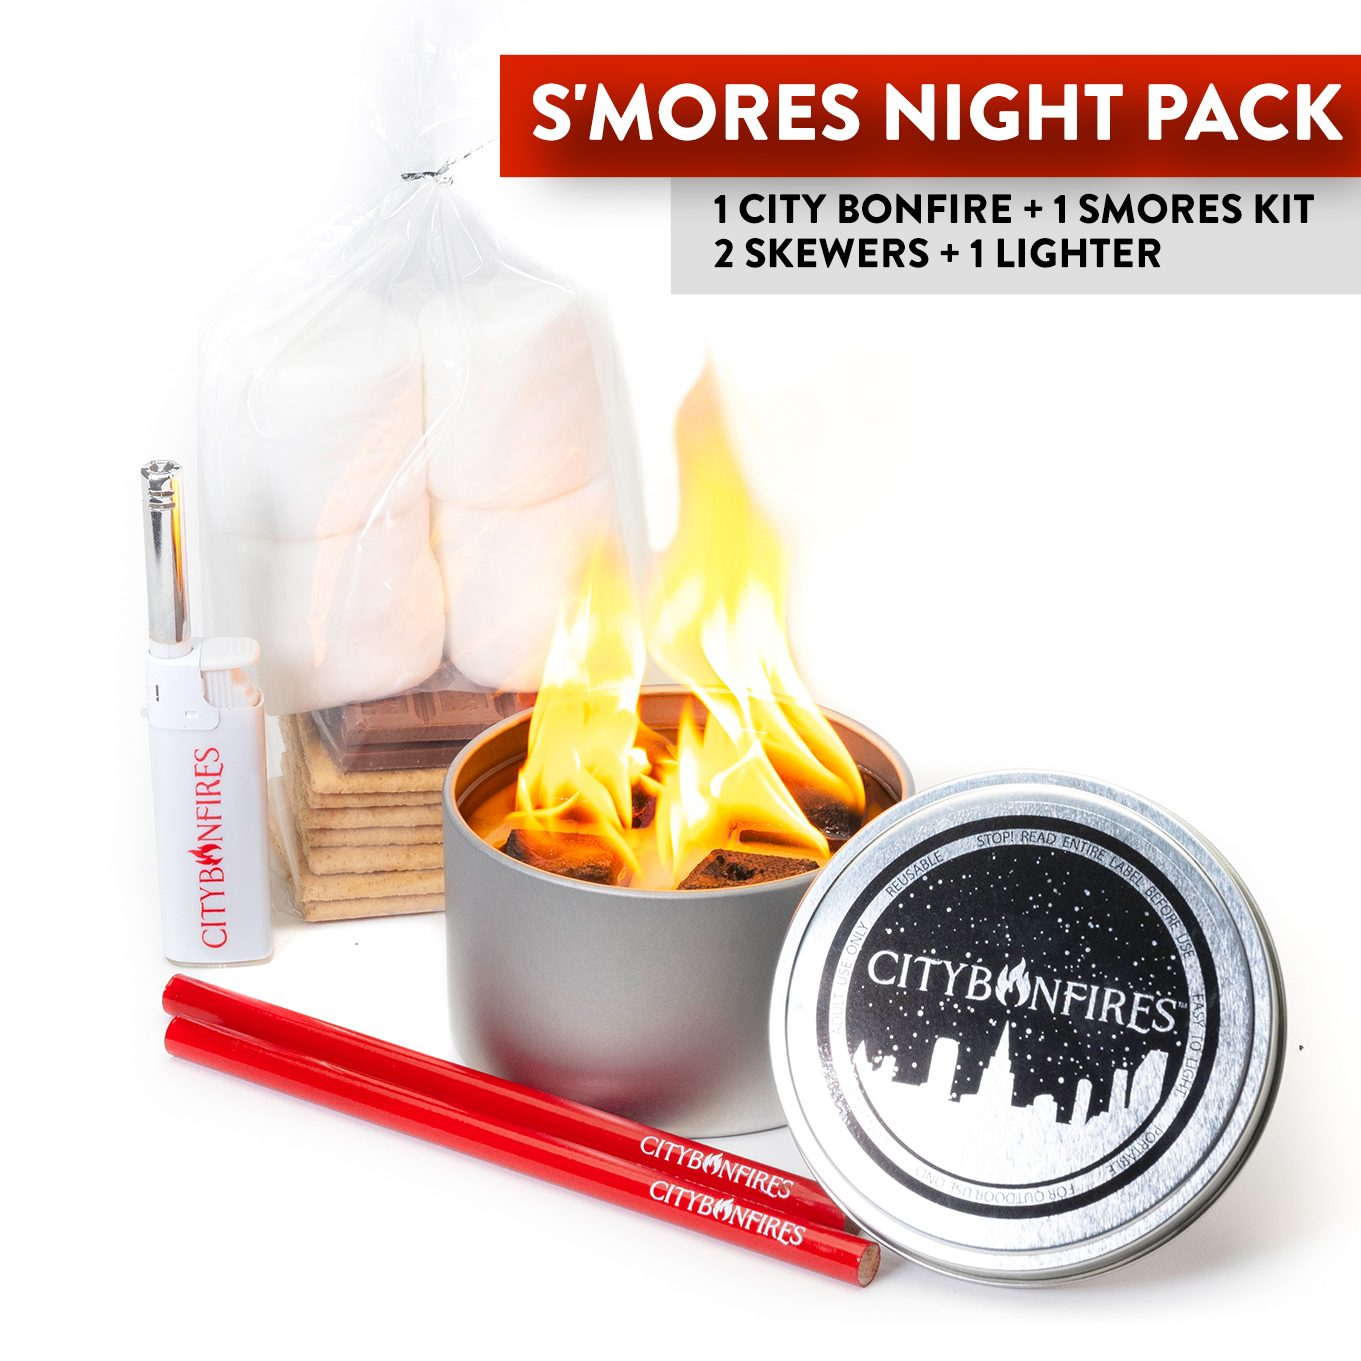 S'mores Night Pack for grandma